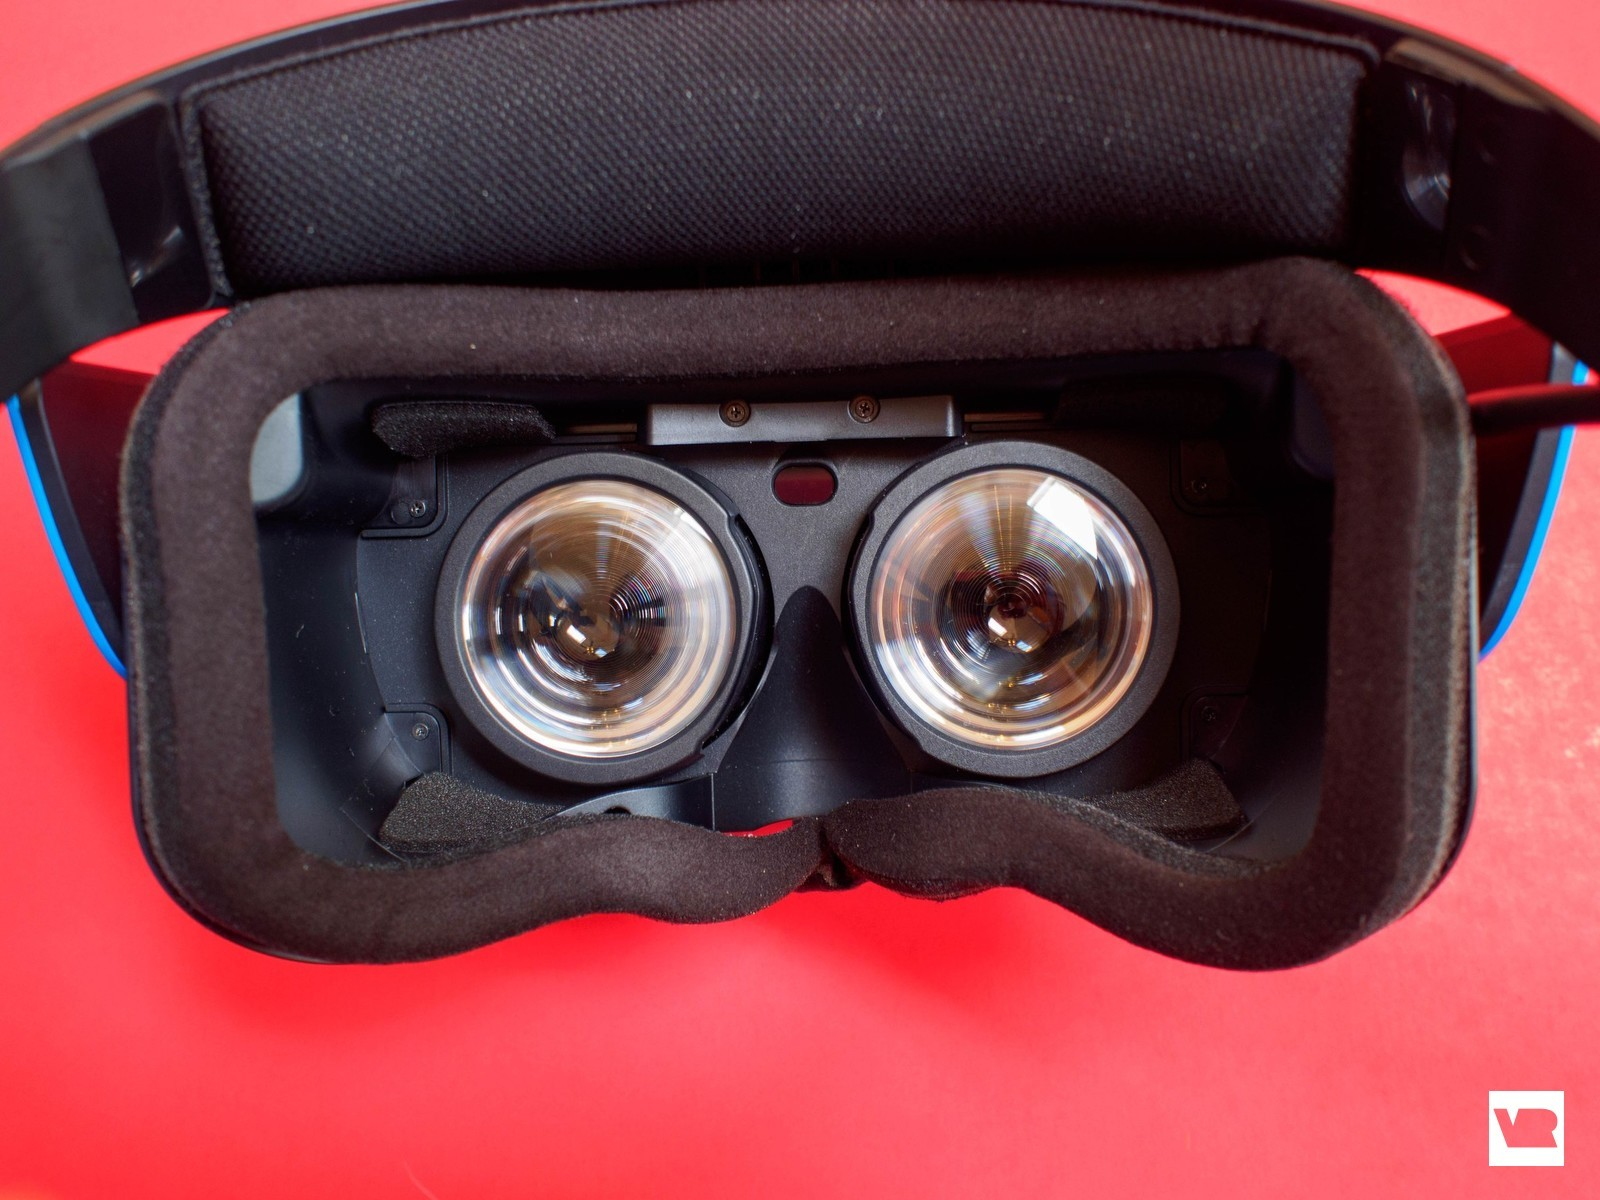 Acer Mixed Reality Lenses